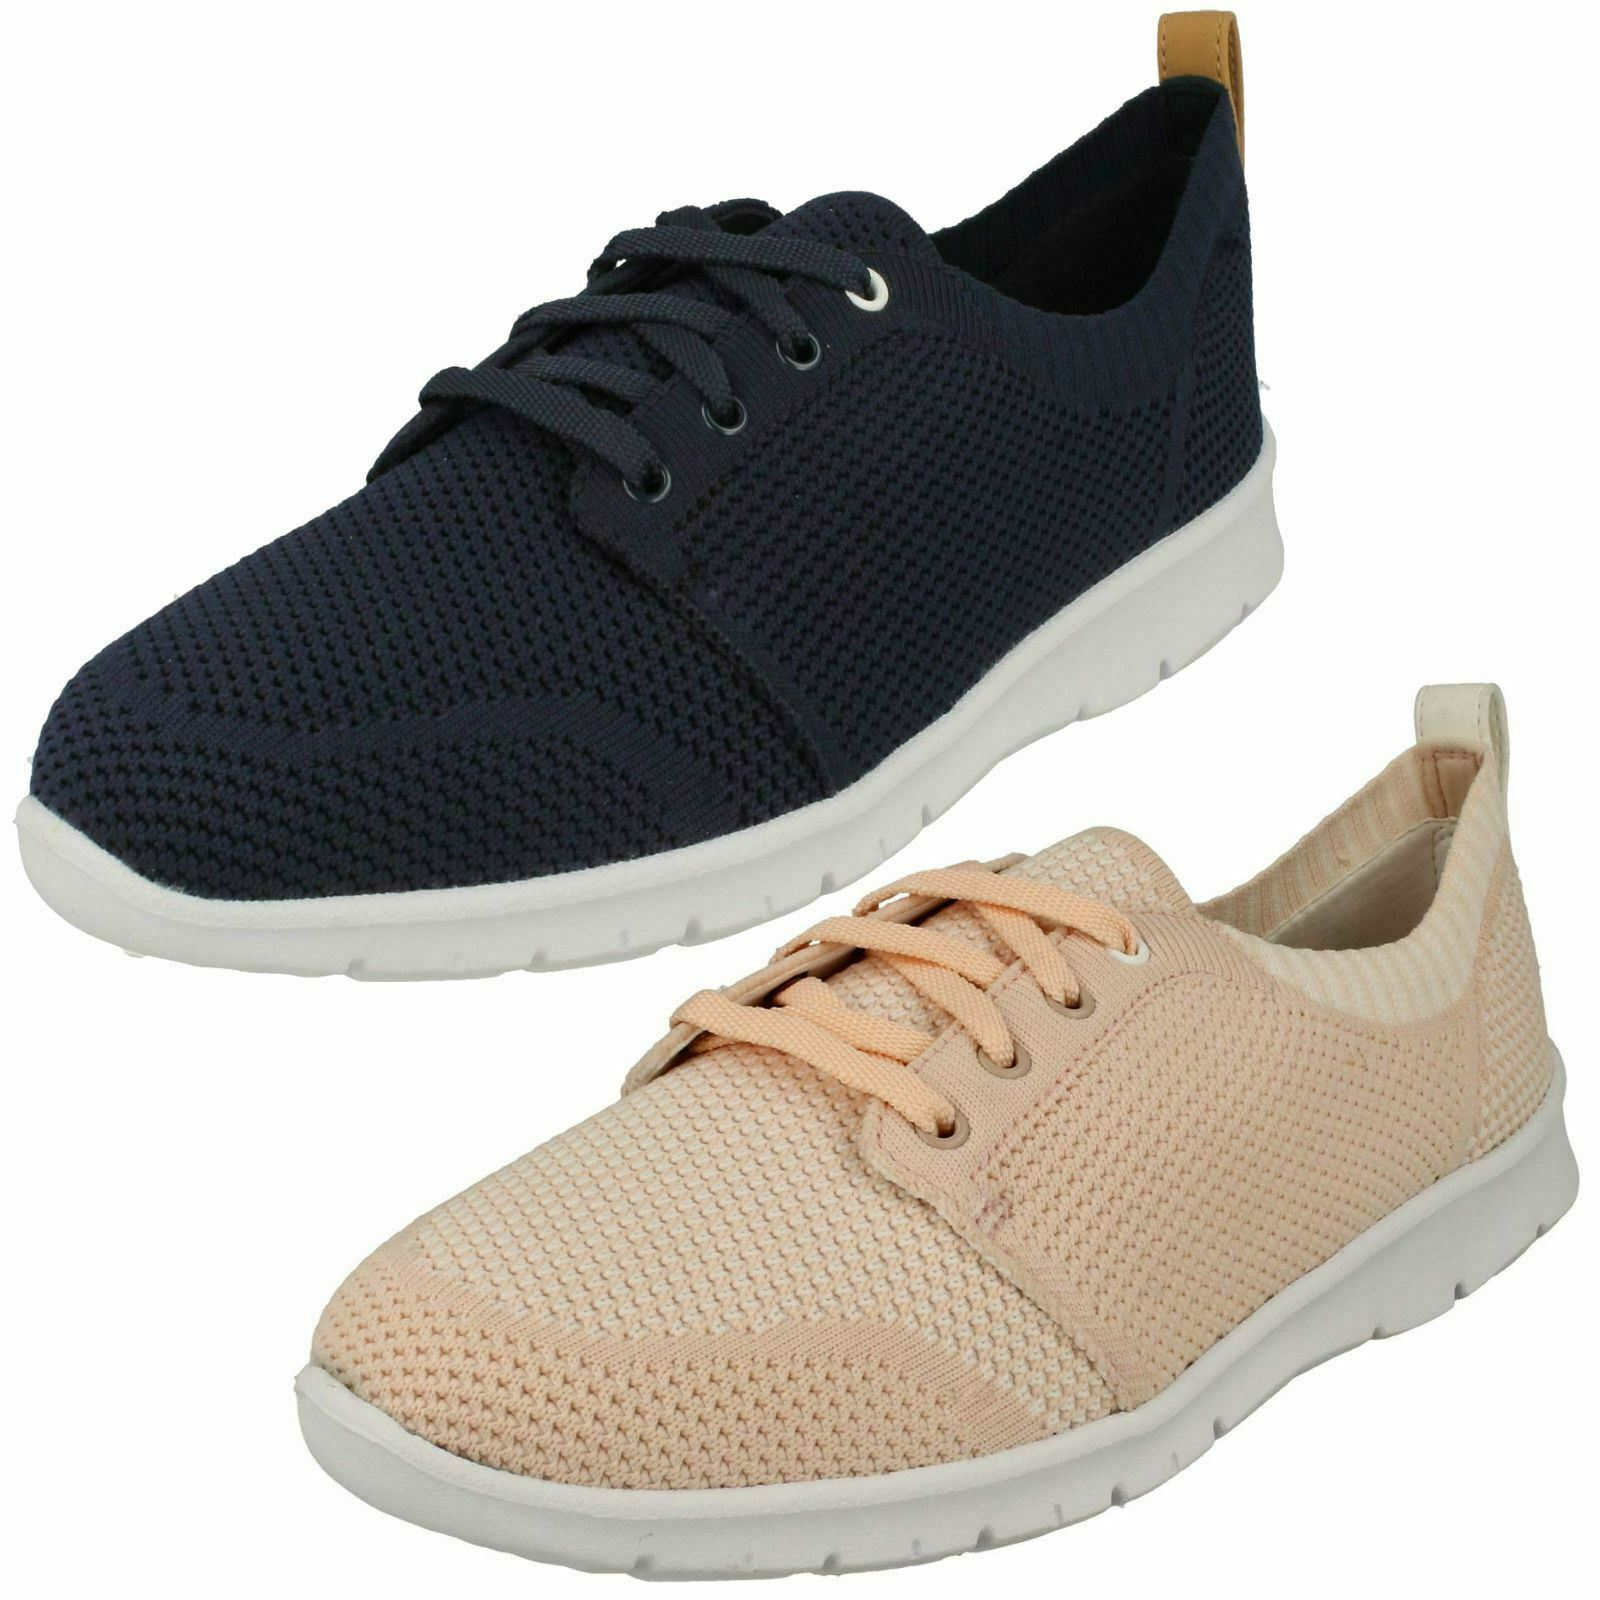 Femmes Clarks Cloudsteppers Step Allena Sole chaussures Casual con Lacci